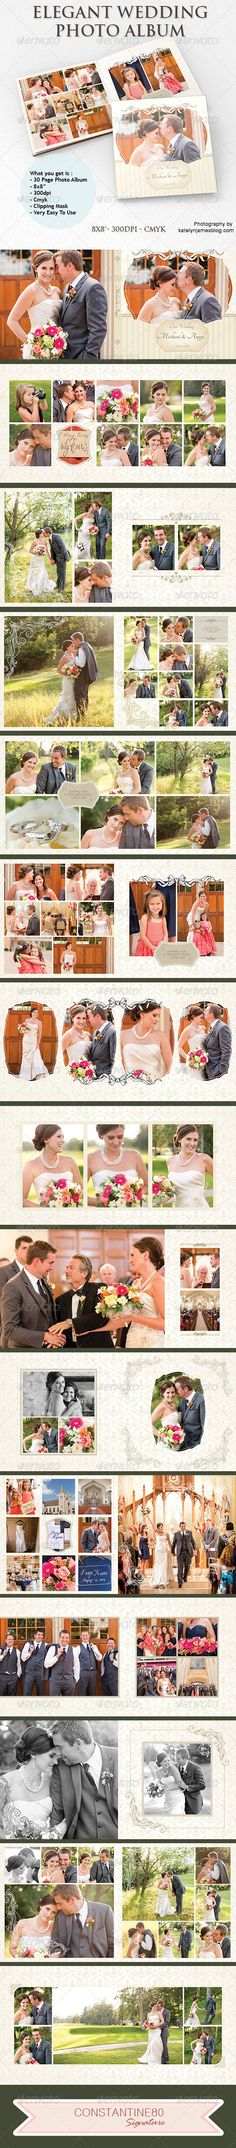 "Elegant Wedding Photo Album  #GraphicRiver         What you get is :  	 Photo Album 8""x8"" Color mode: CMYK Resolution: 300 DPI Total Dimensions: 4838×2438px  	 Total is 15 items    —-—-—-—-- Fonts used: Trajan Pro  .myfonts /fonts/adobe/trajan/ Tangerine  .dafont /search.php?q=tangerine     	 How To Use:put your Picture above layer "">>>PHOTO Created: 1September13 GraphicsFilesIncluded: PhotoshopPSD Layered: Yes MinimumAdobeCSVersion: CS4 PrintDimensions: 8x8 Tags: 10x10 #12x12 #8x8"